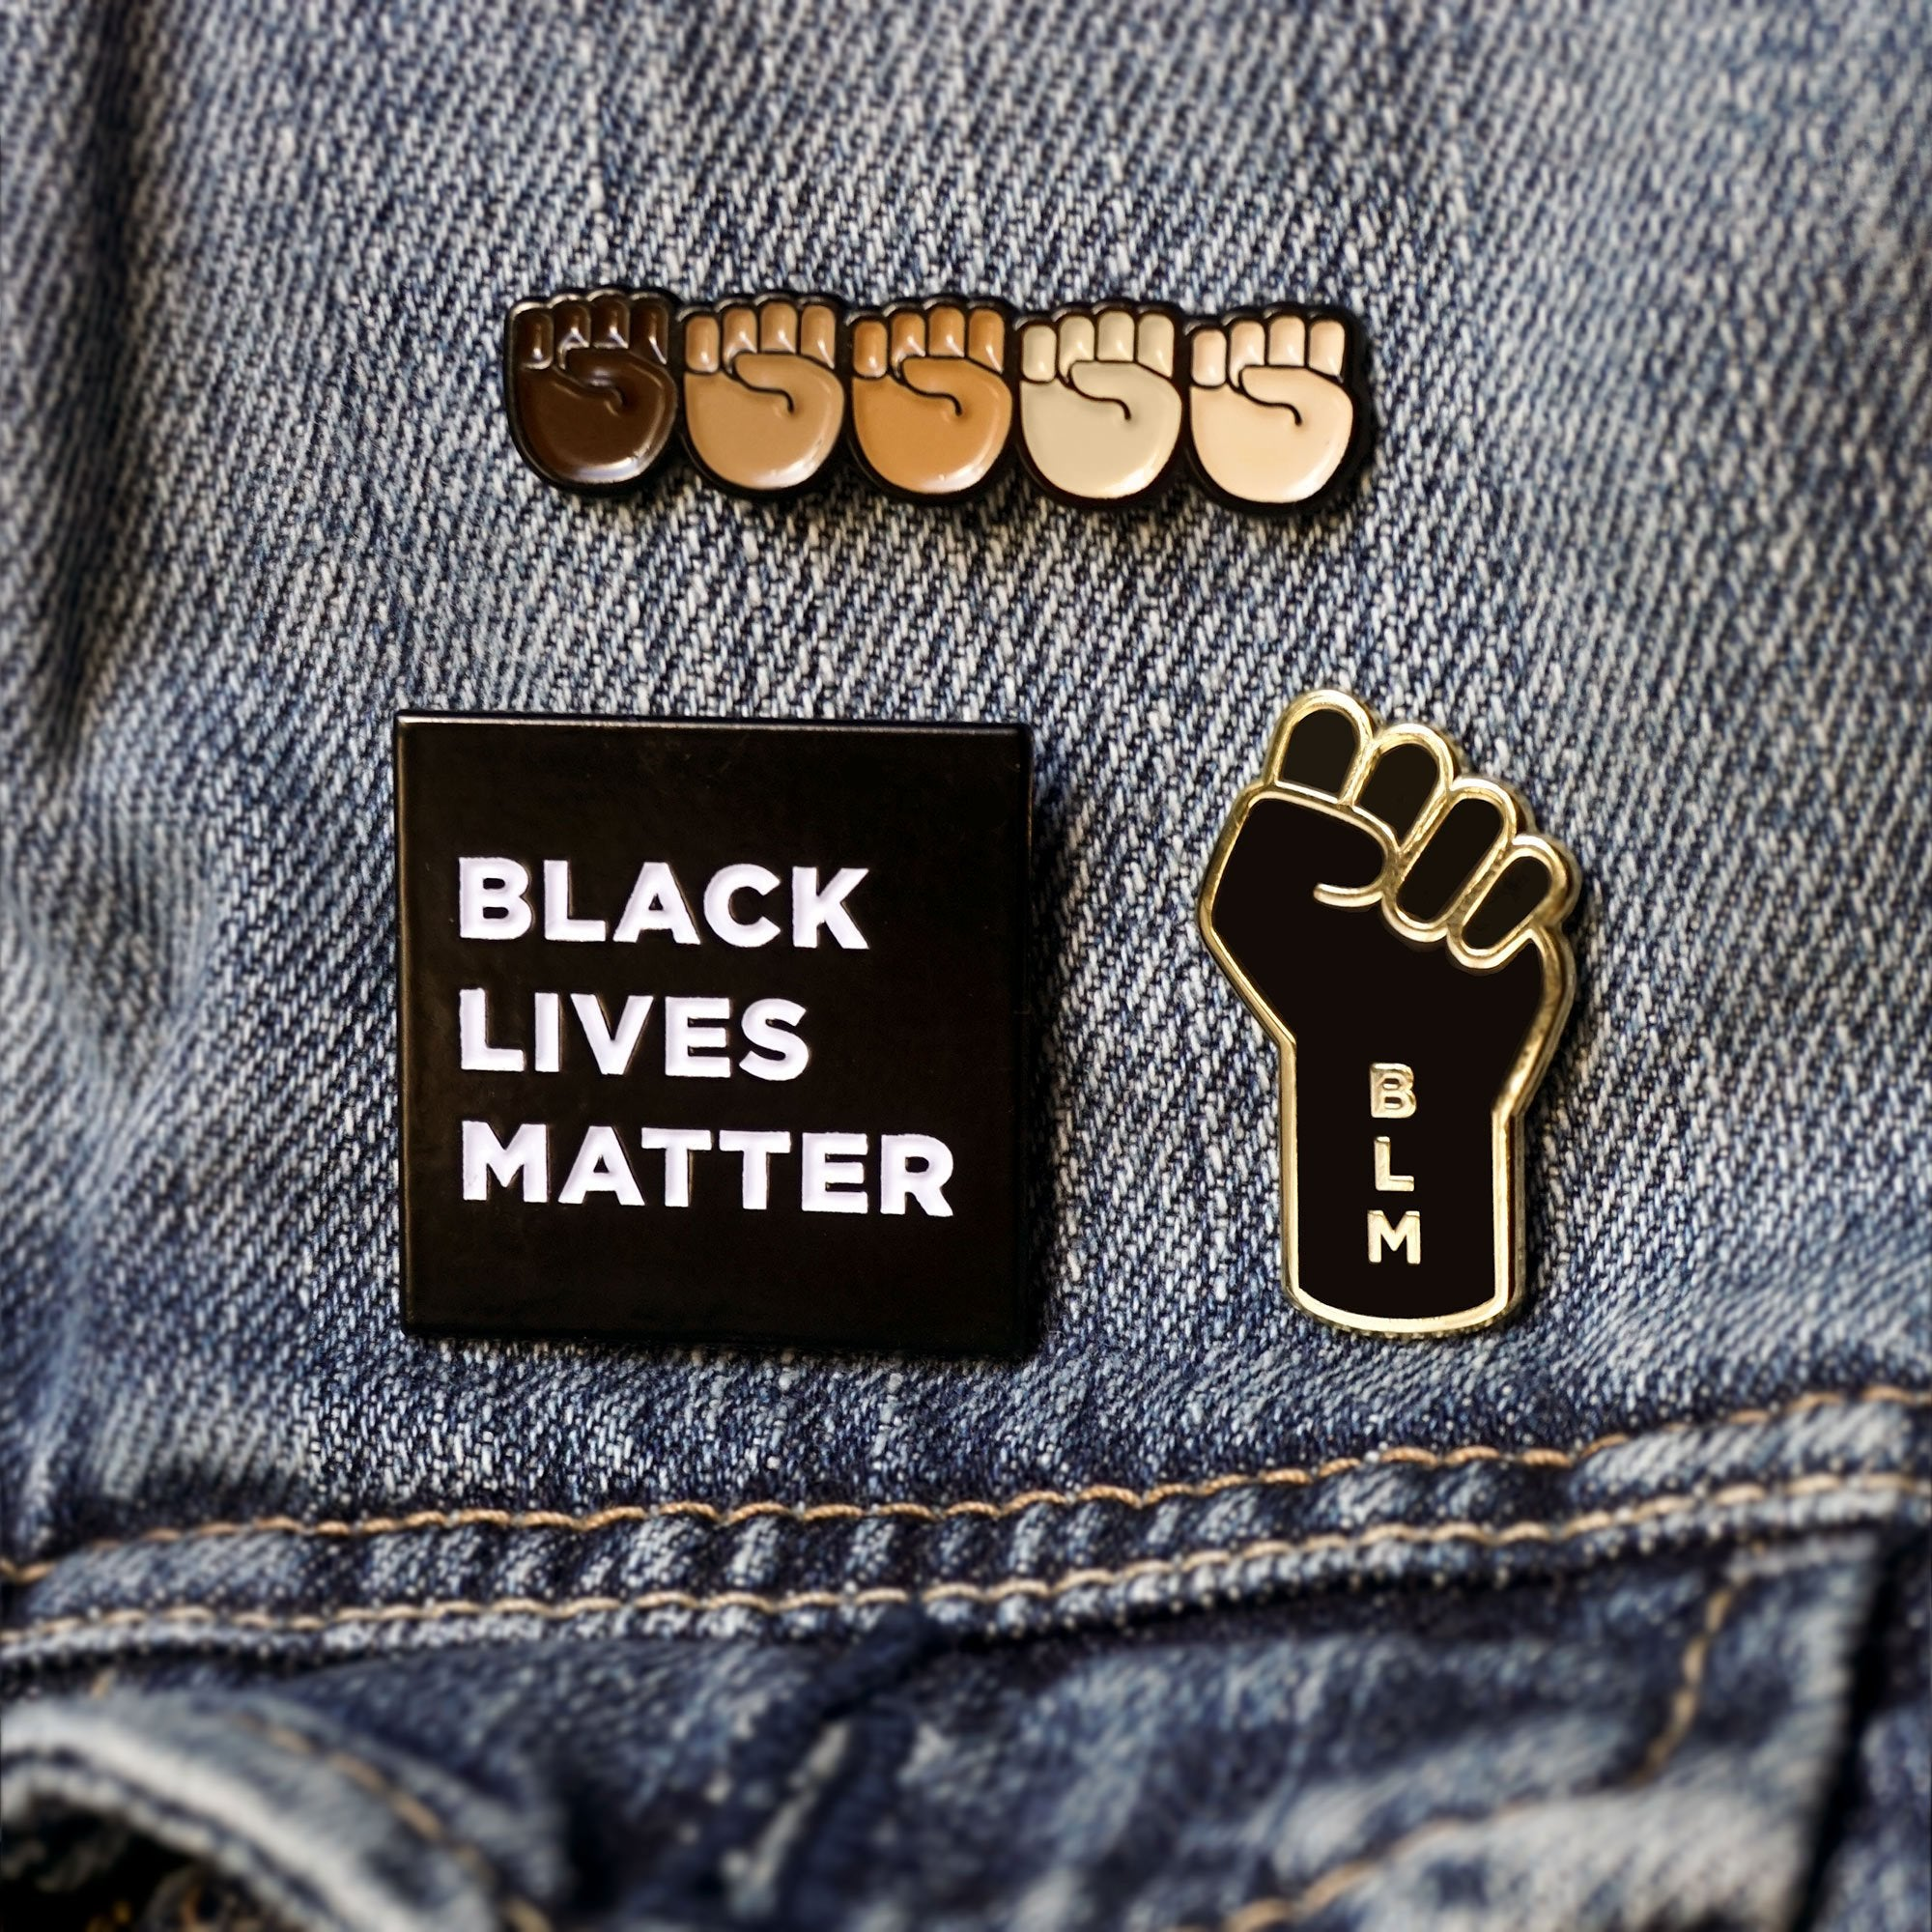 'STAND TOGETHER' RAISED FISTS EMOJI PIN | BLACK LIVES MATTER CHARITY FUNDRAISER